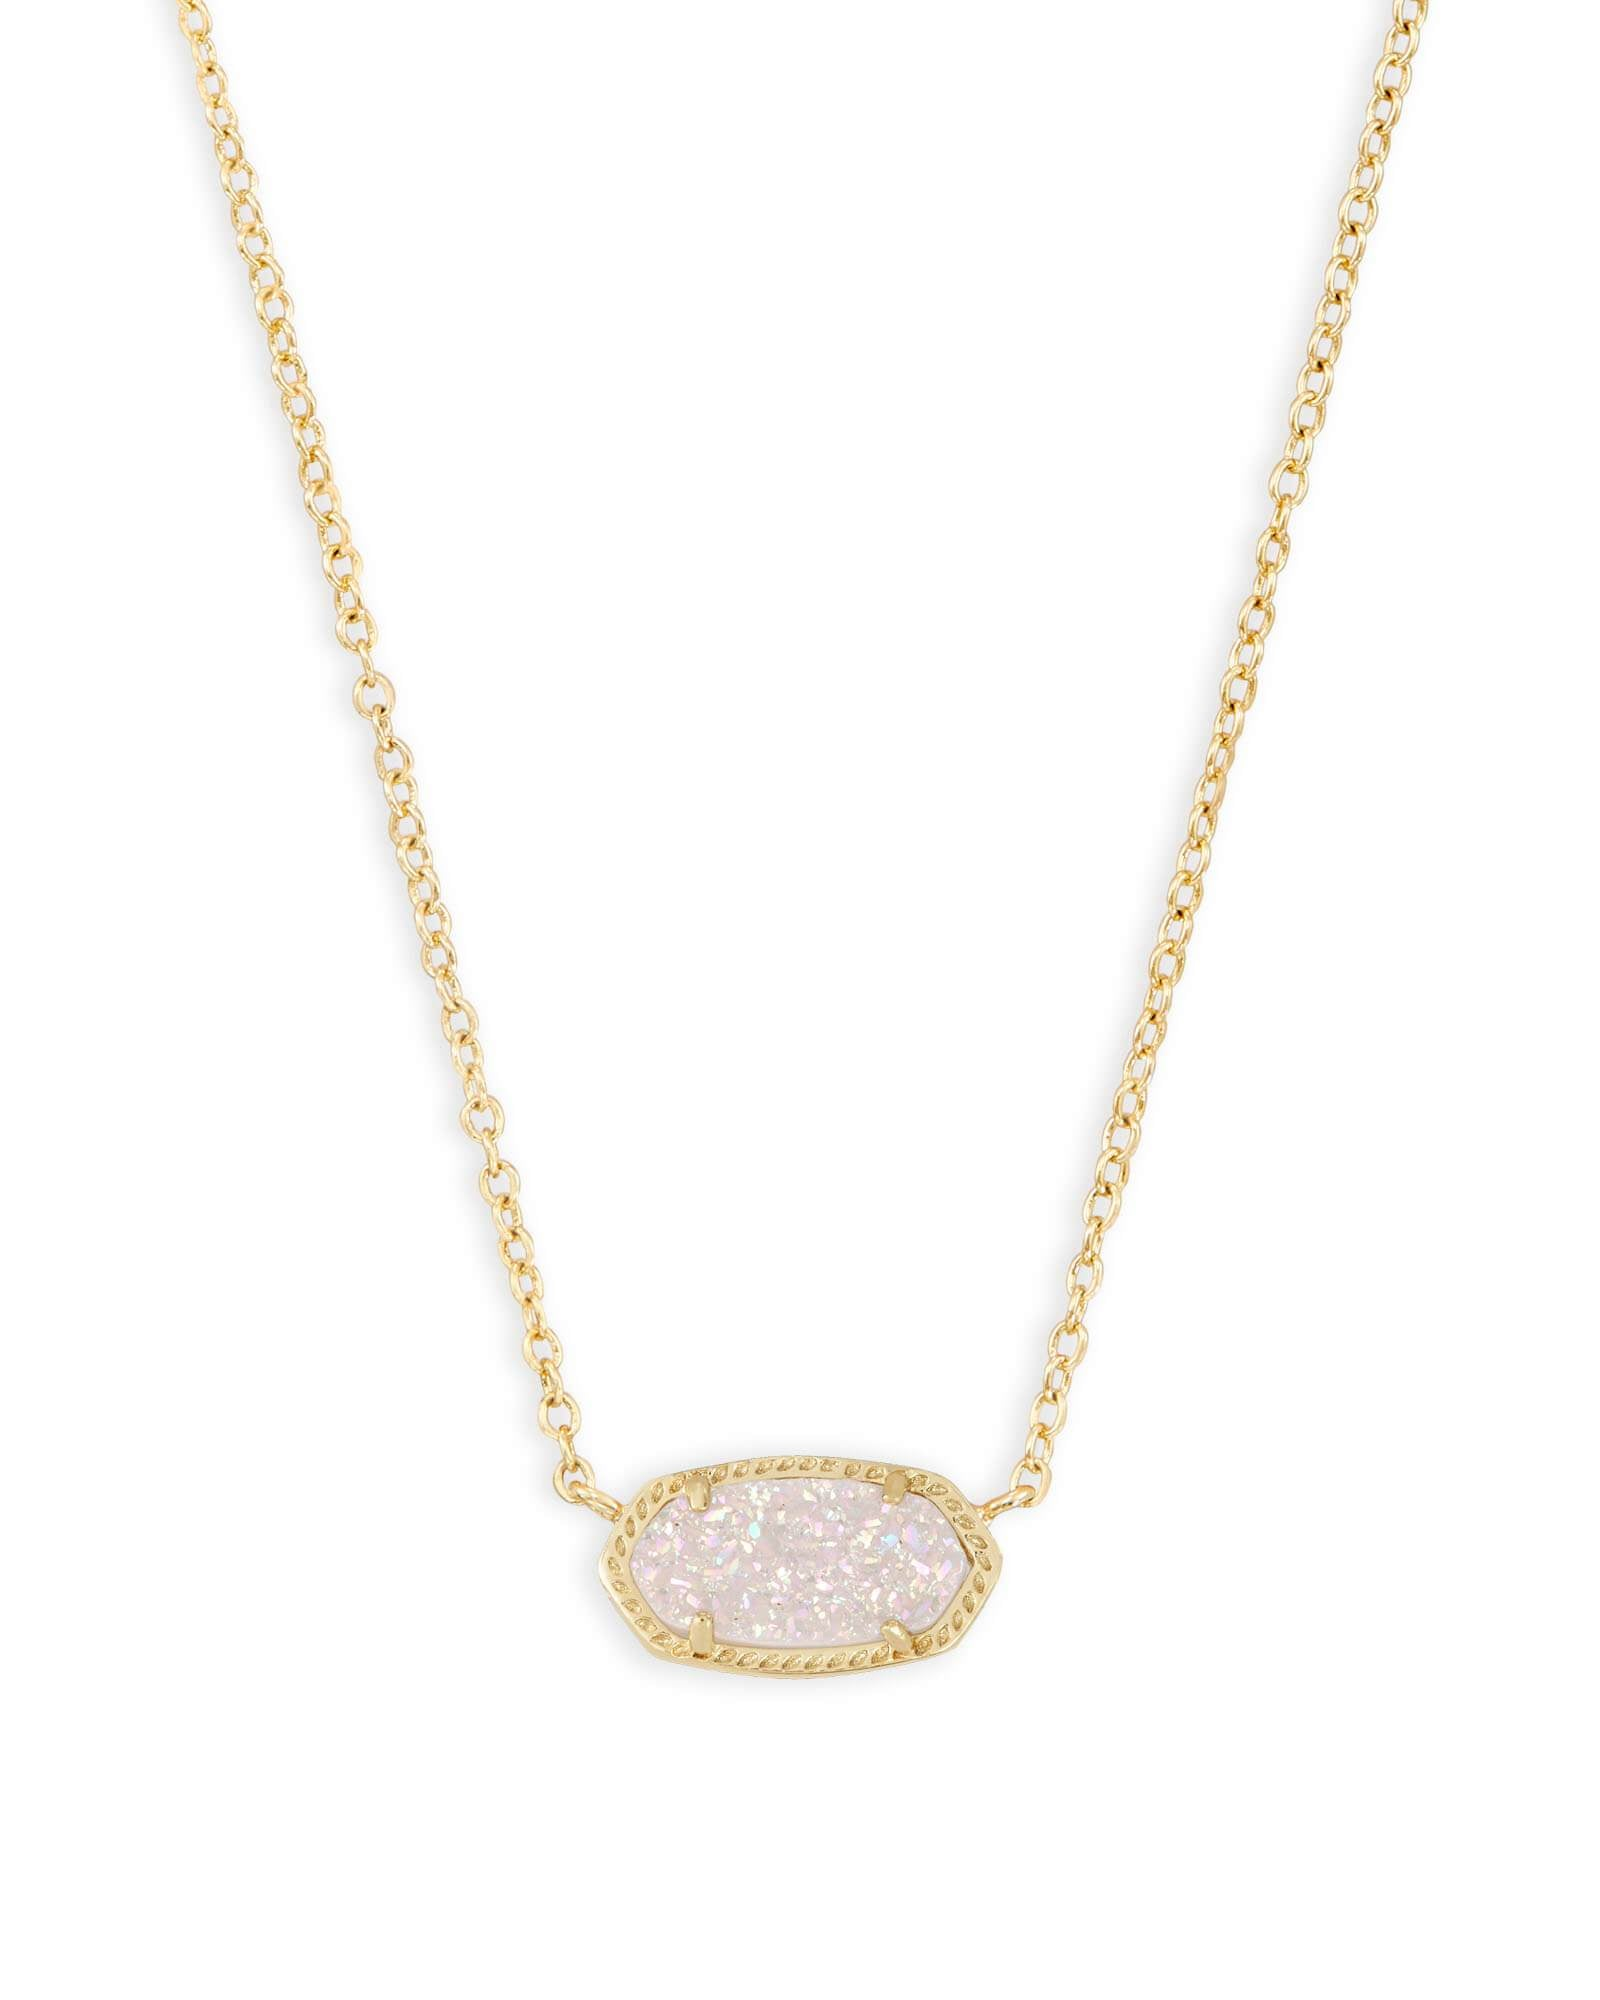 Elisa Gold Iridescent Drusy Necklace